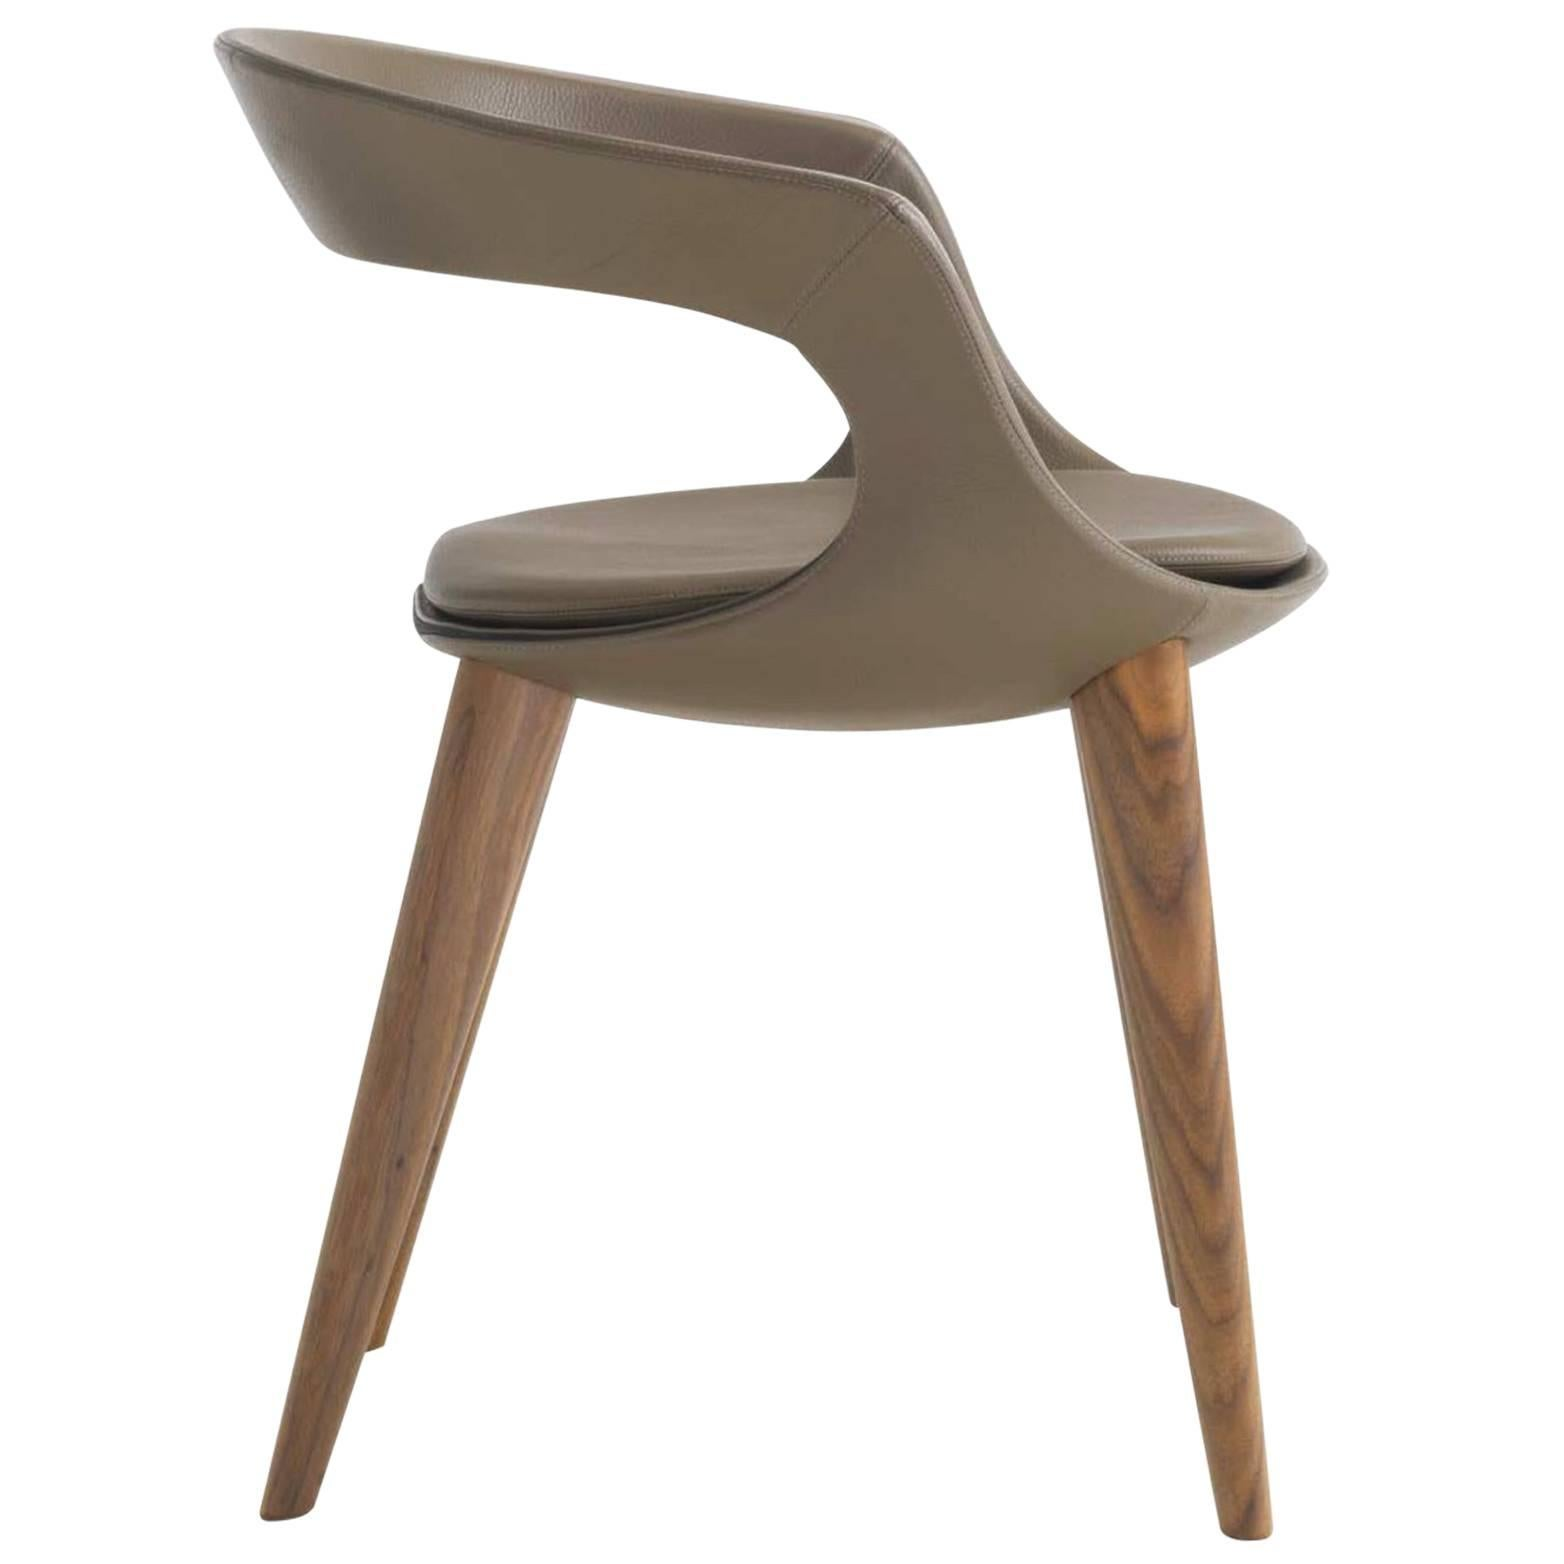 Italian Contemporary Dining Chair Made In Italy, Leather For Sale